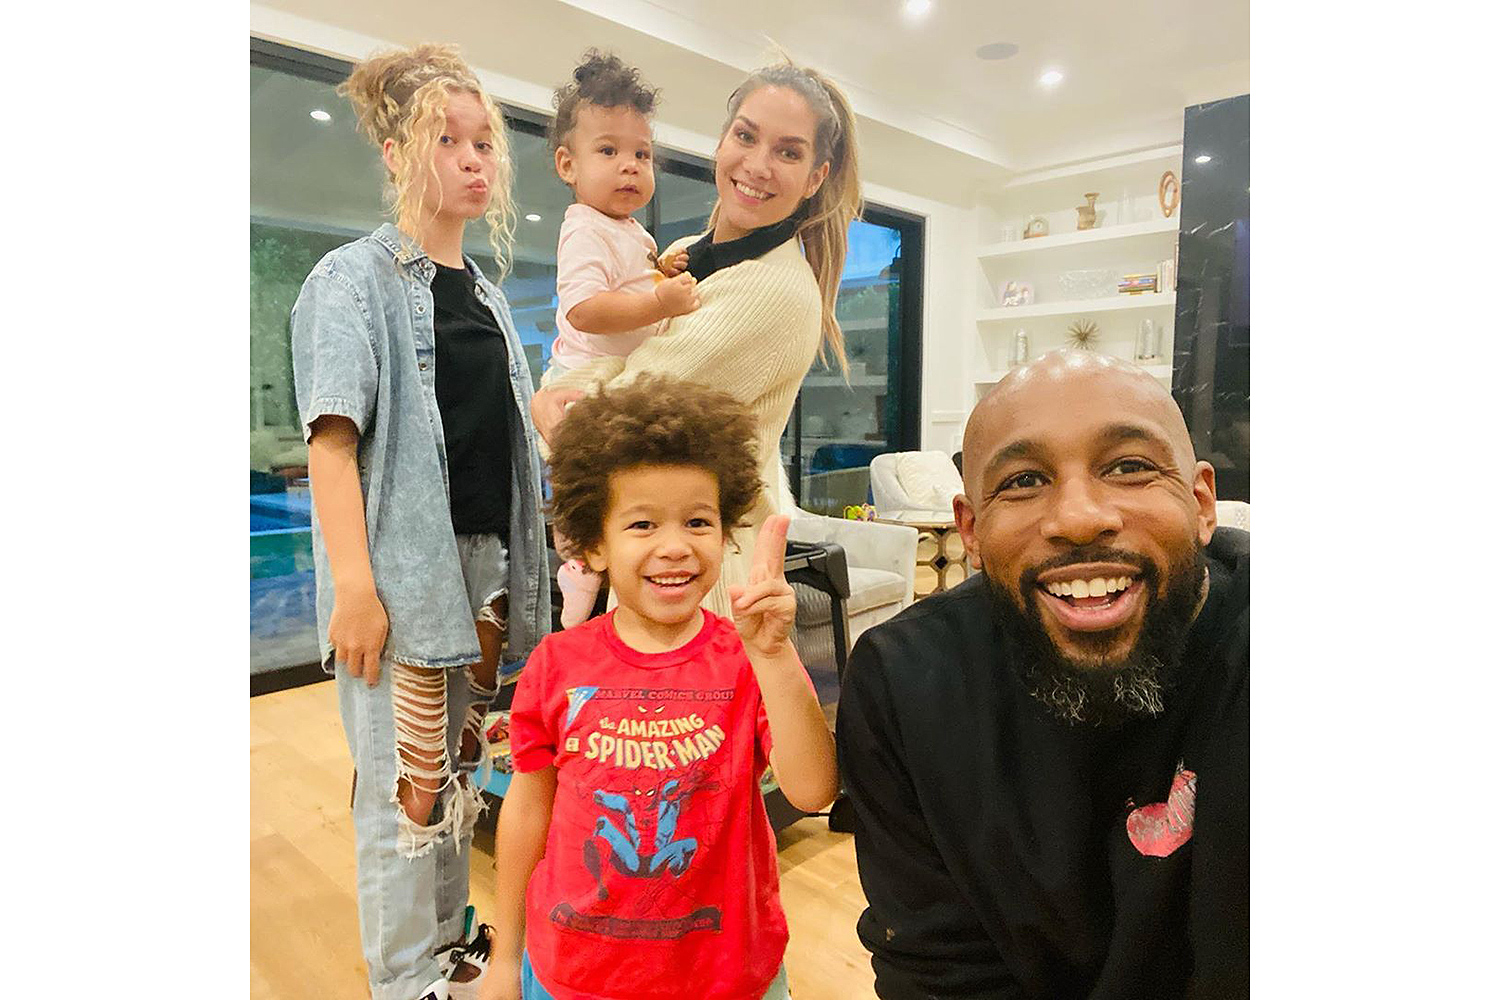 Stephen tWitch Boss and Allison Holker family